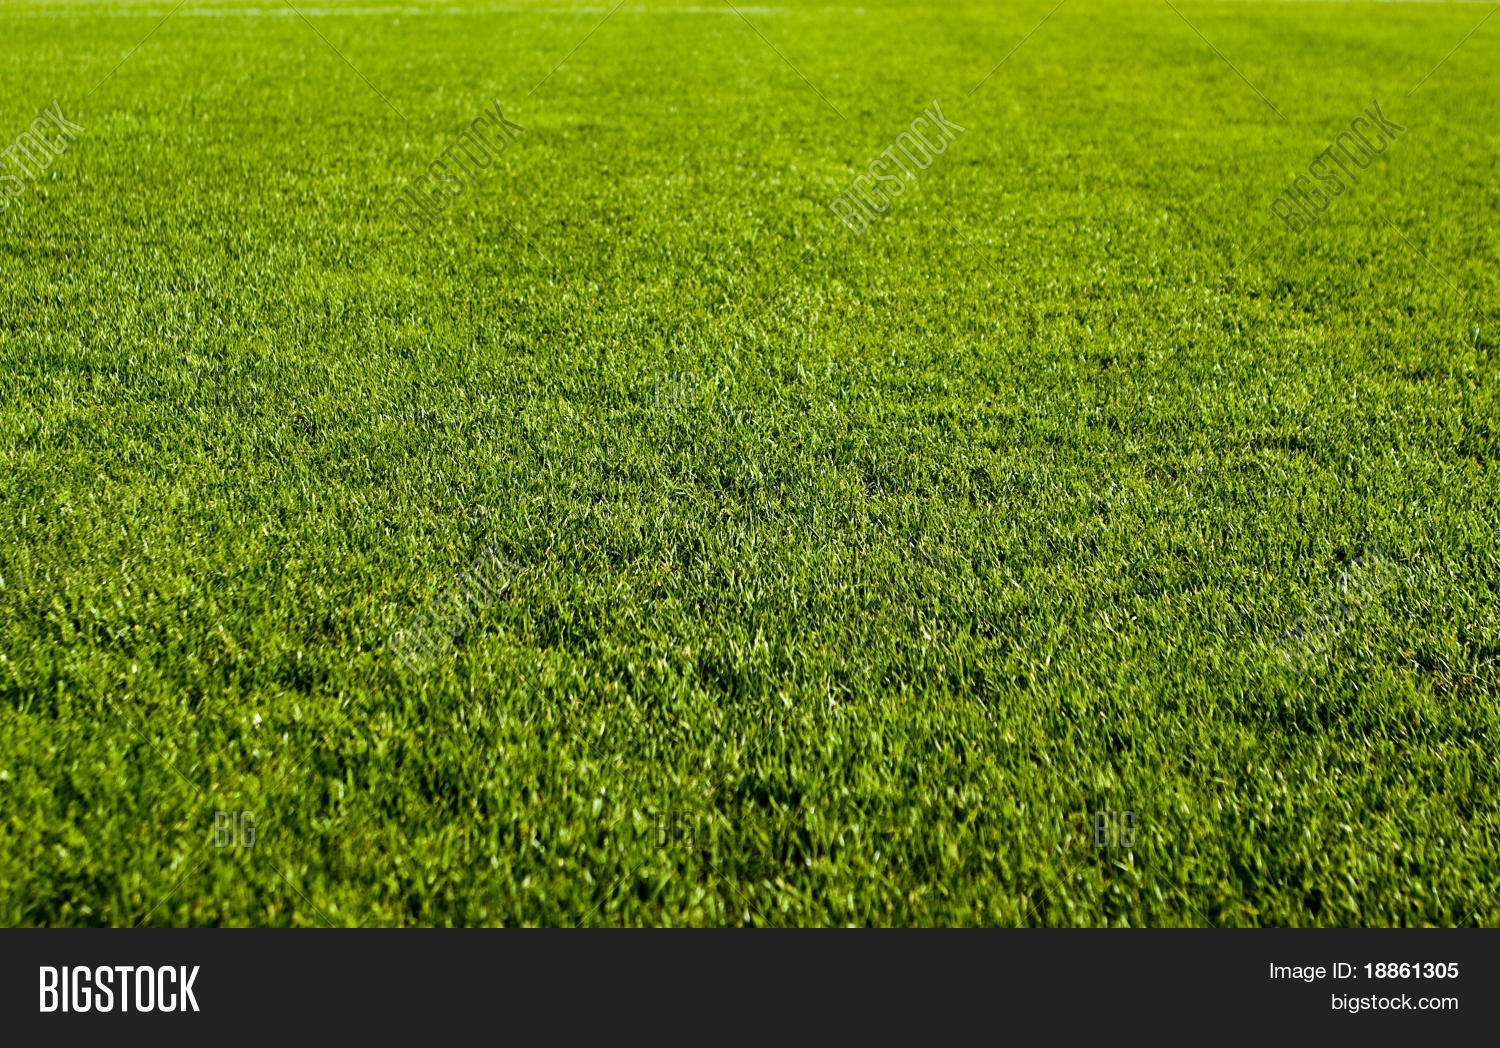 Nice Green Grass Texture Form Image & Photo